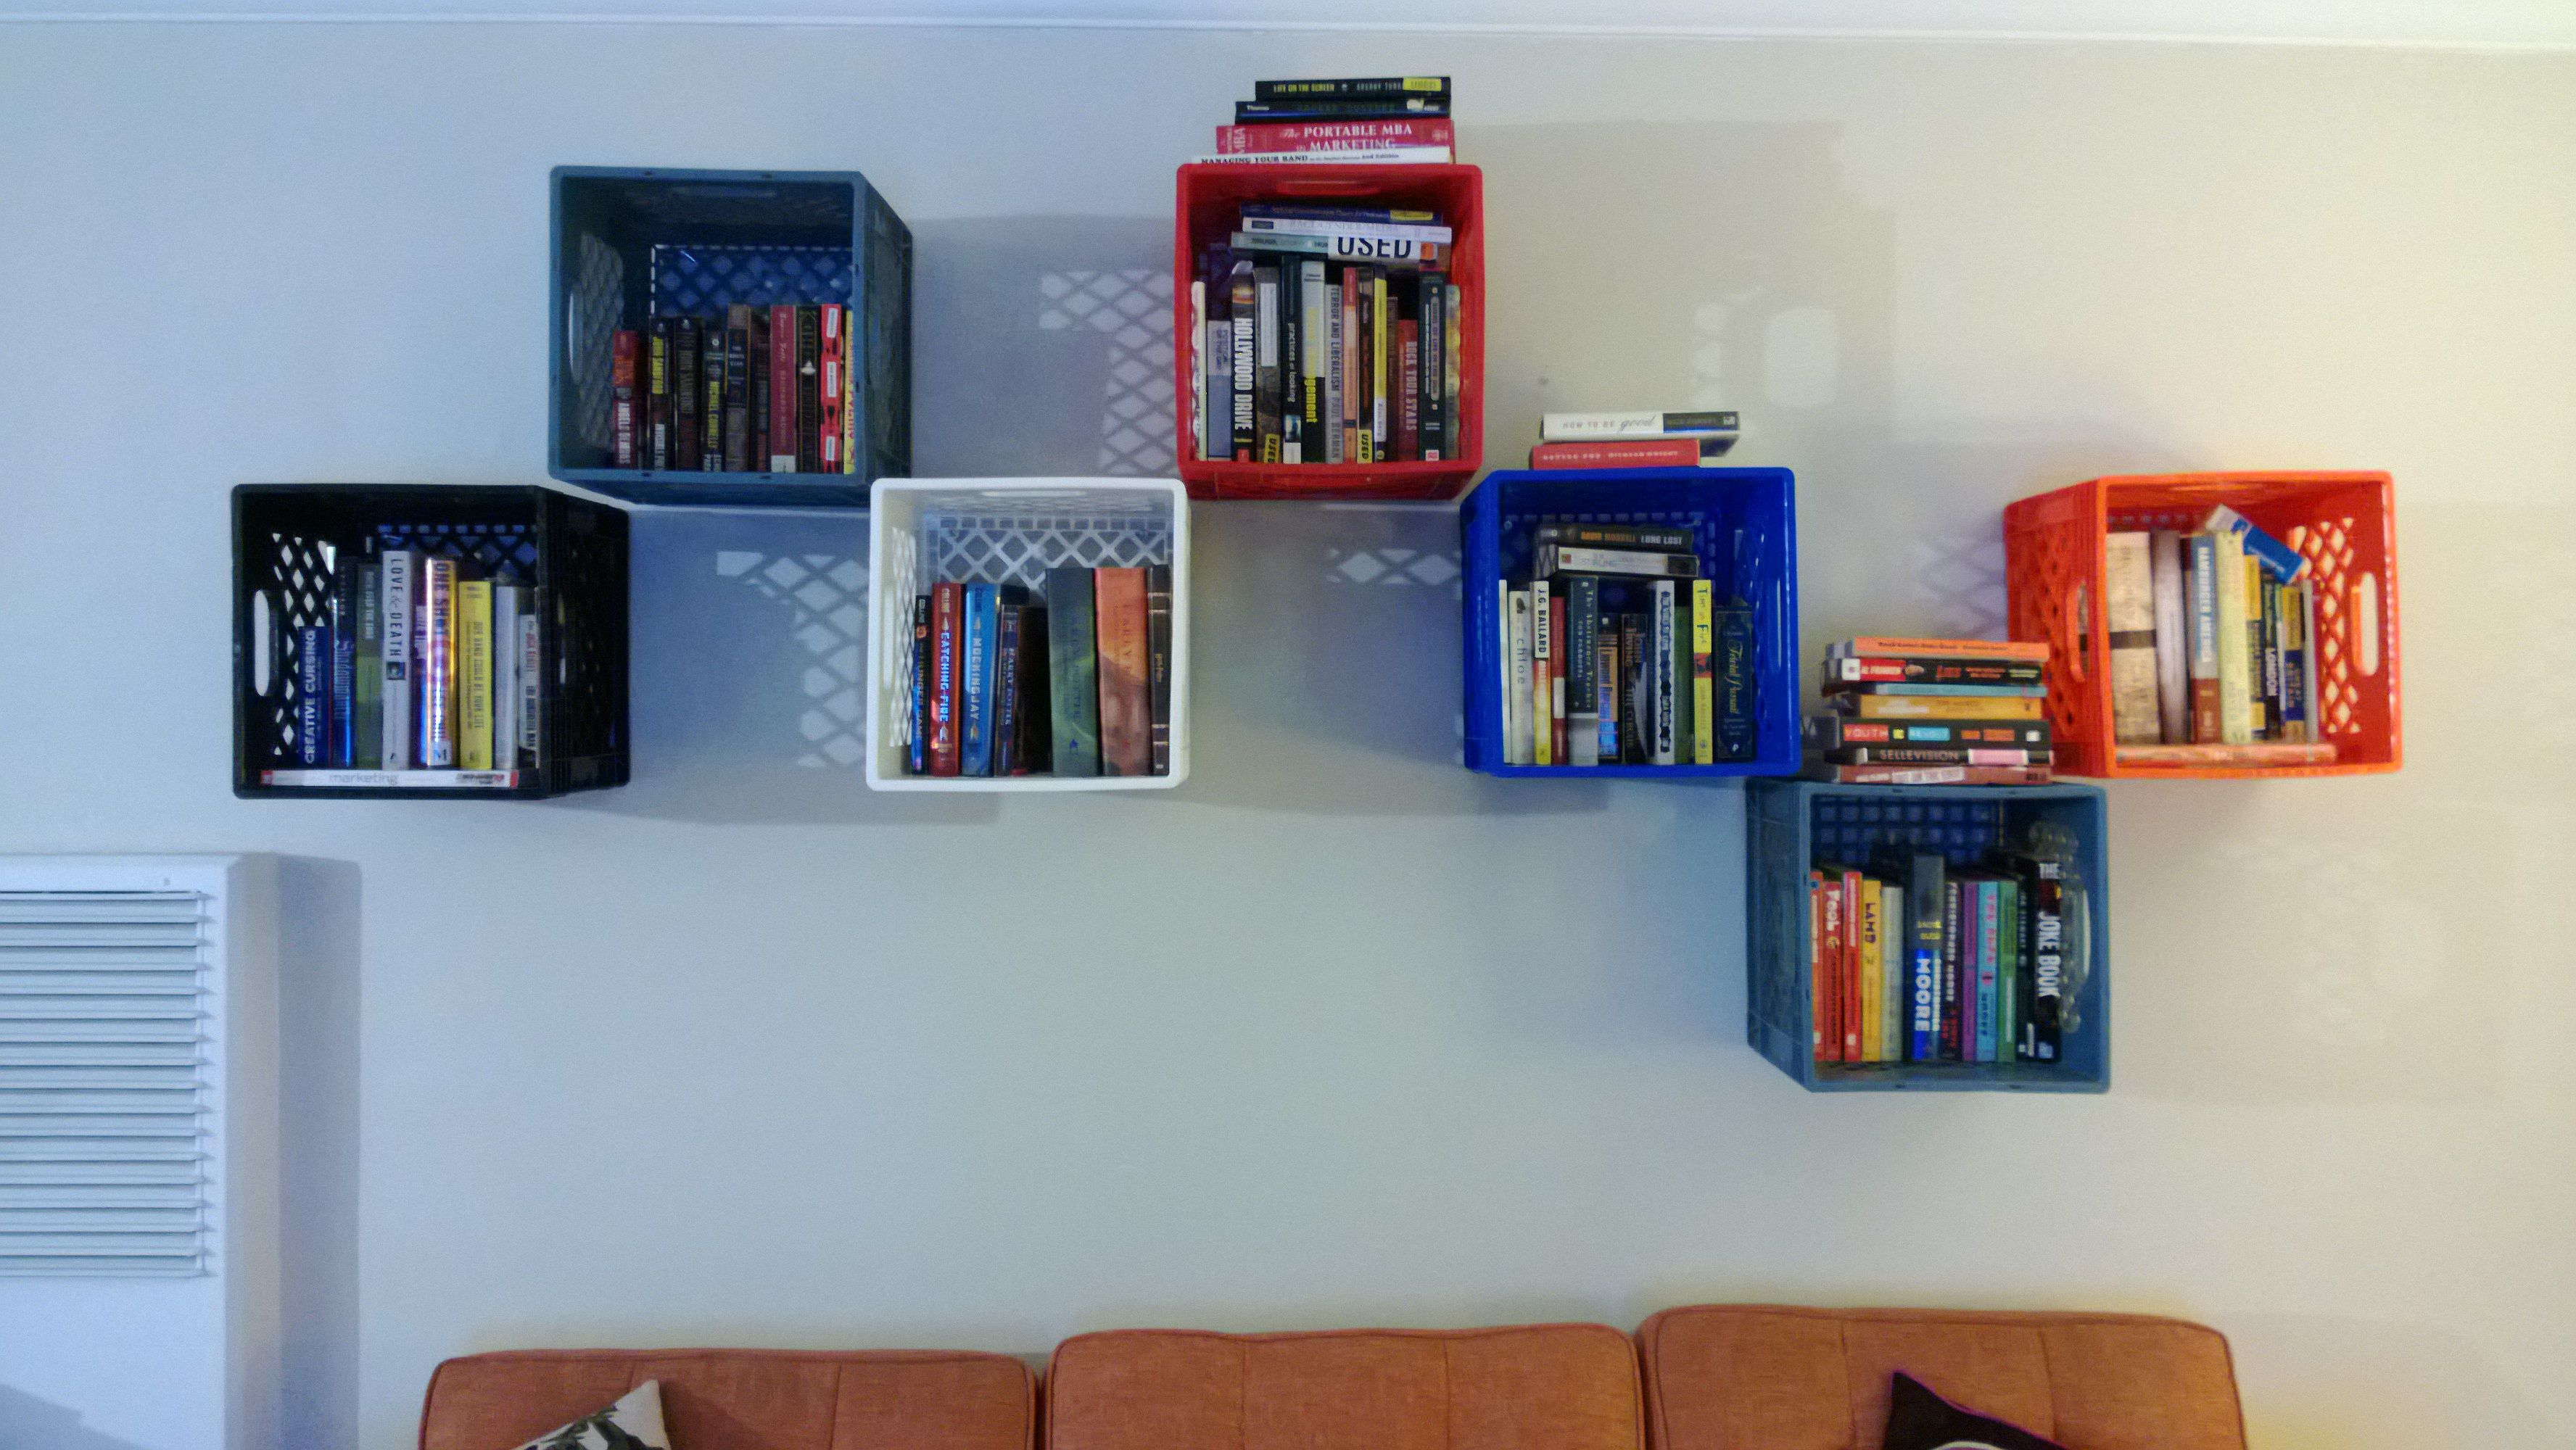 Milk Crate Bookshelf Built With New And Used Crates Told It Is The Ultimate Hipster Bookcase